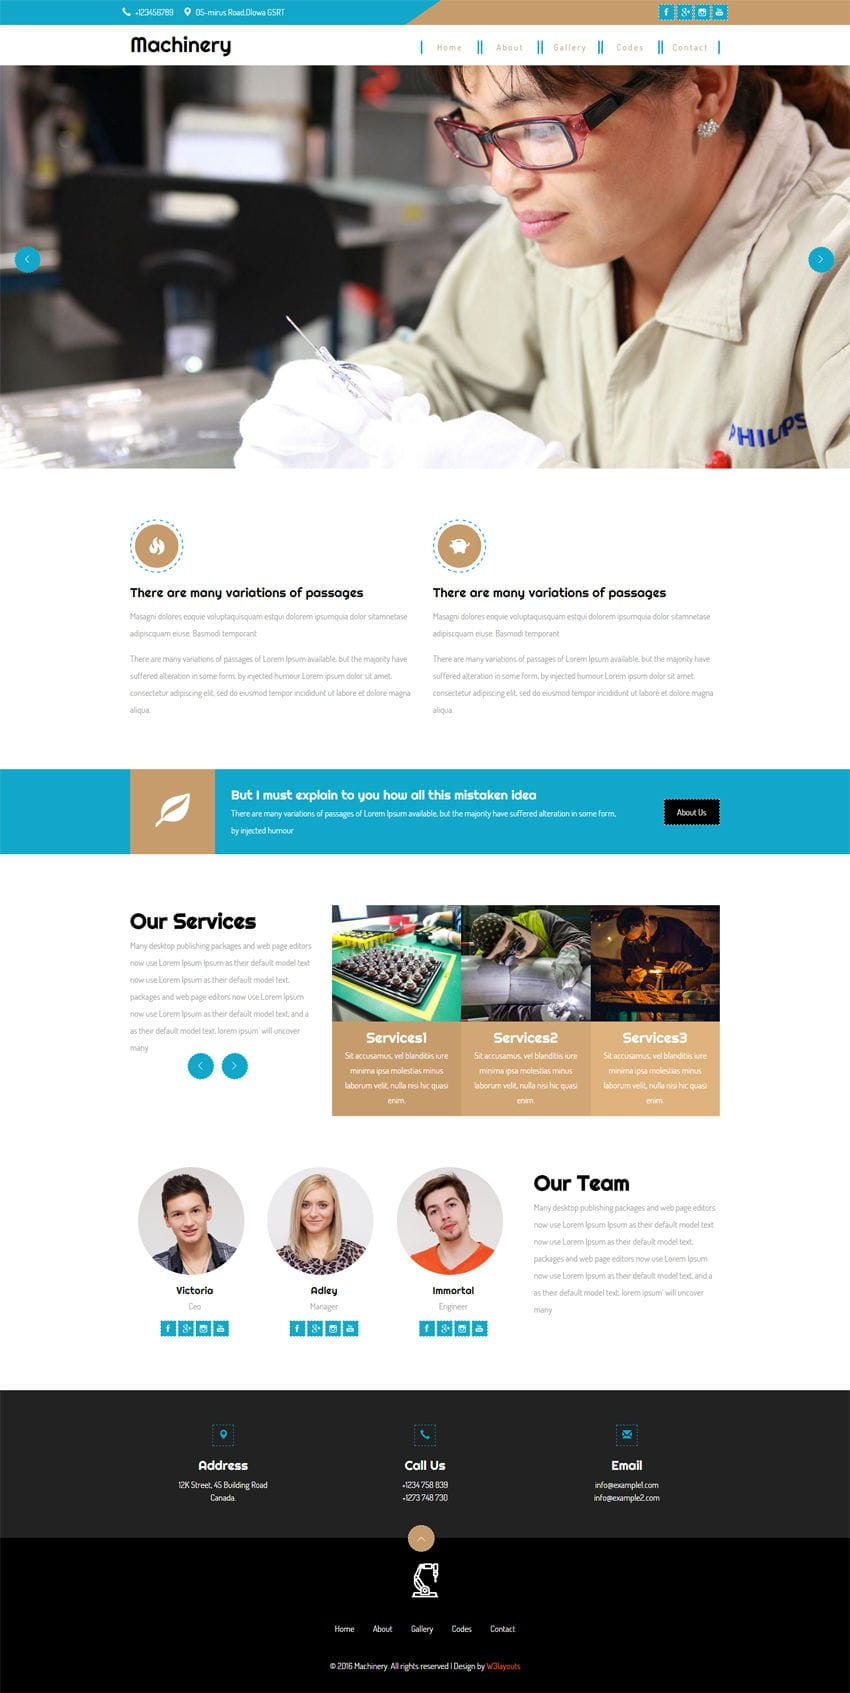 Machinery A Industrial Category Flat Bootstrap Responsive Web Template